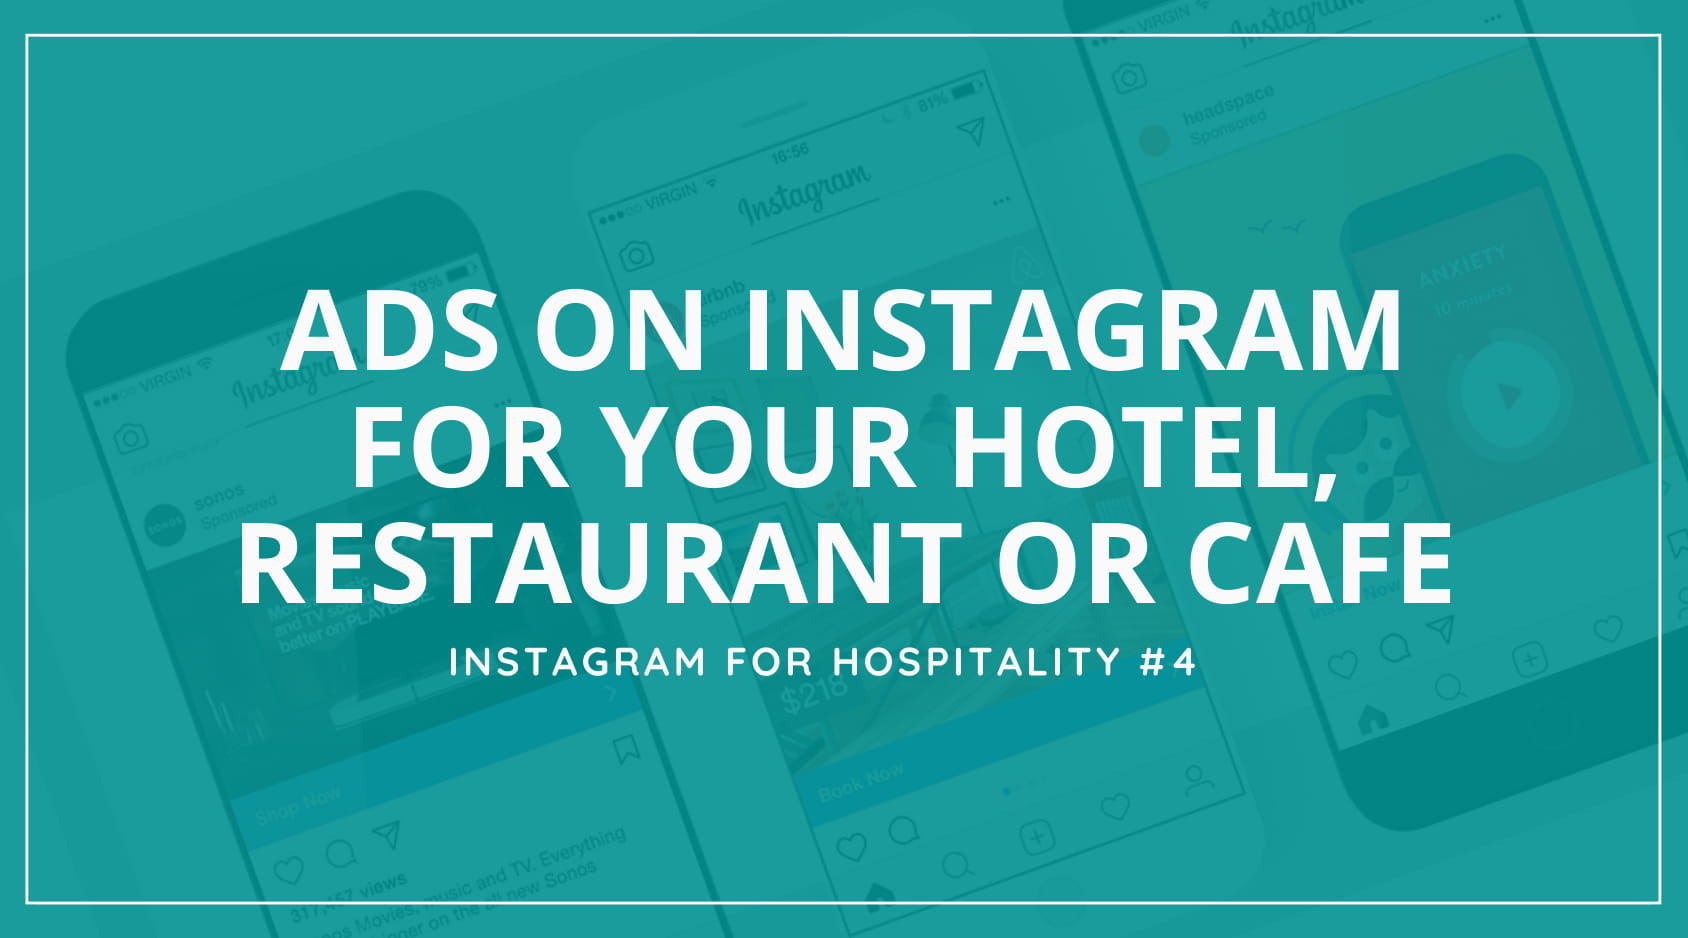 Tremento - Instagram for Hospitality - How to use ads